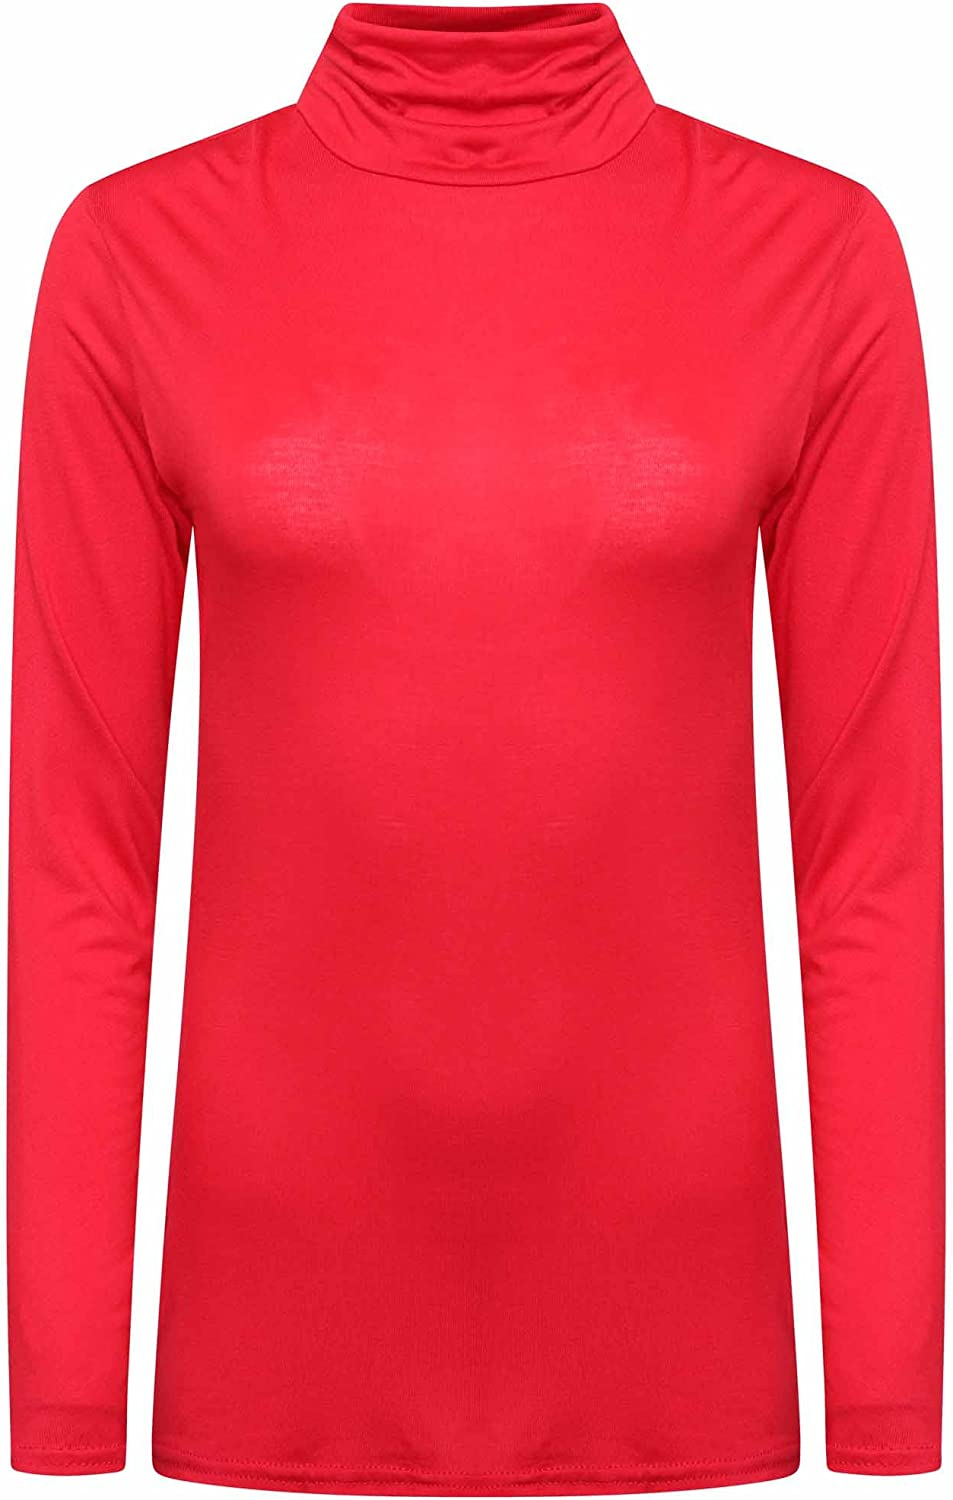 LVL Online Store Ladies Womens Polo Neck Top Stretch Long Sleeve Turtle Neck Top Jumper 8-26